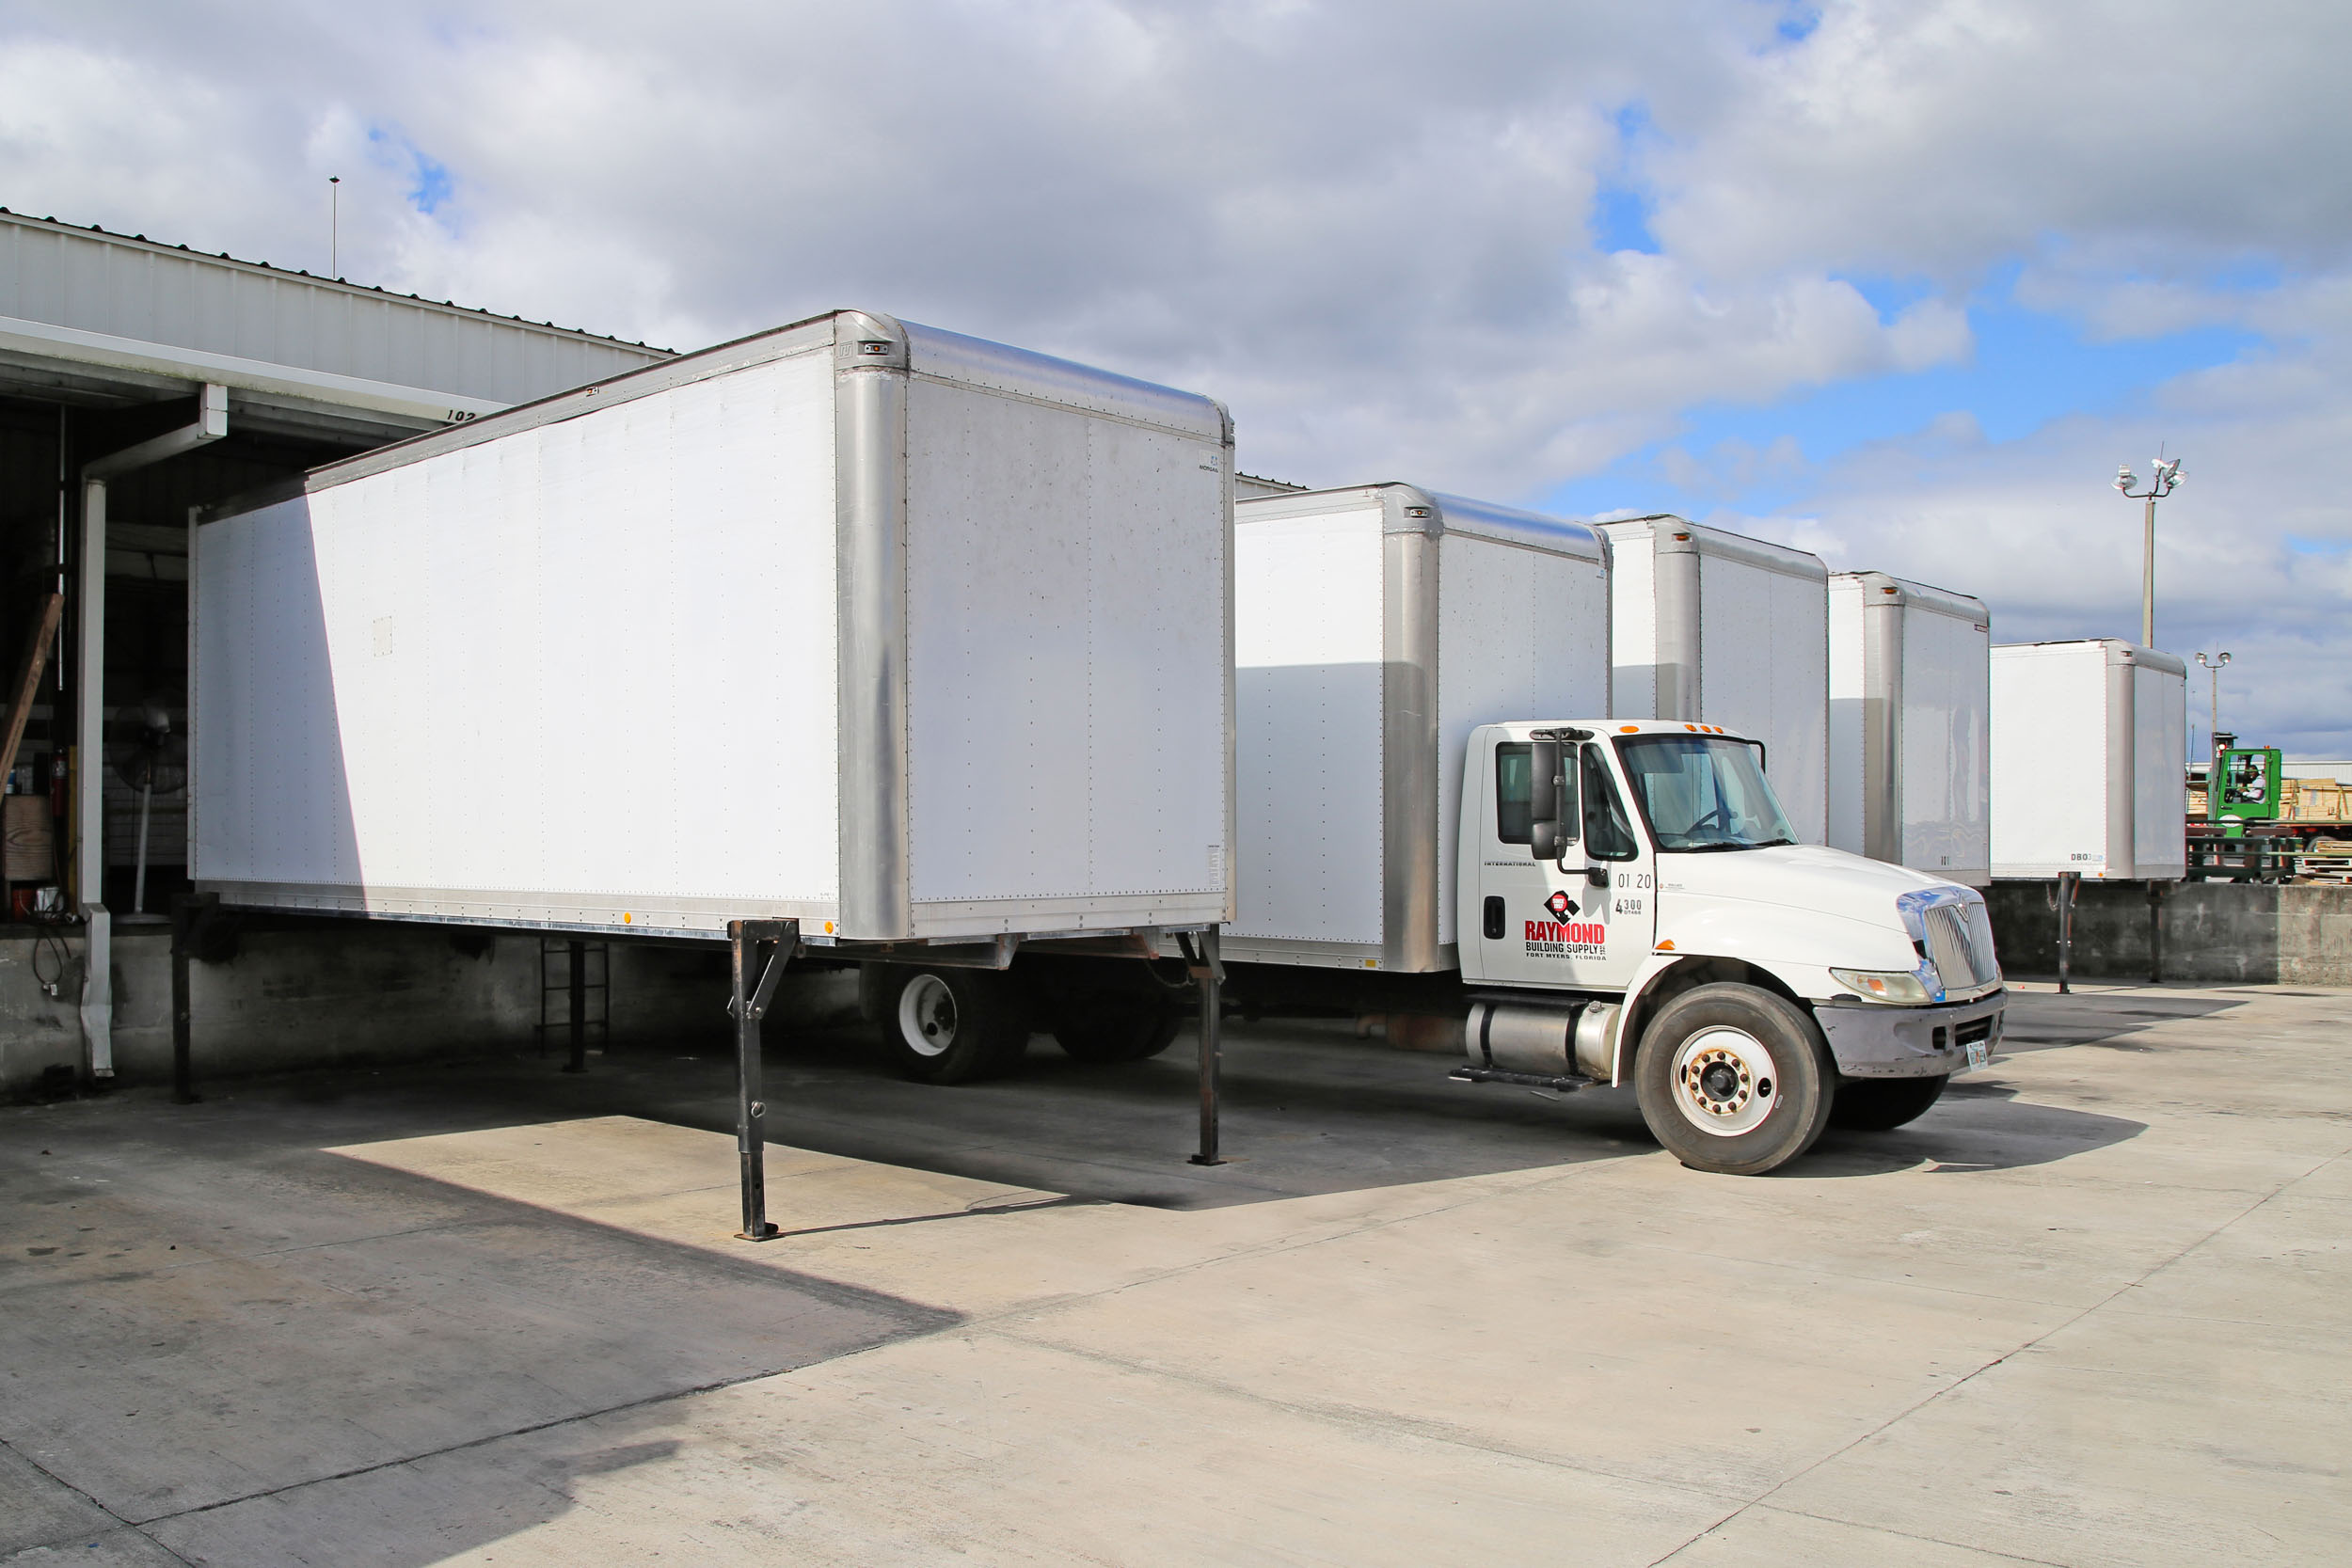 Swap Body containers at a warehouse loading dock.